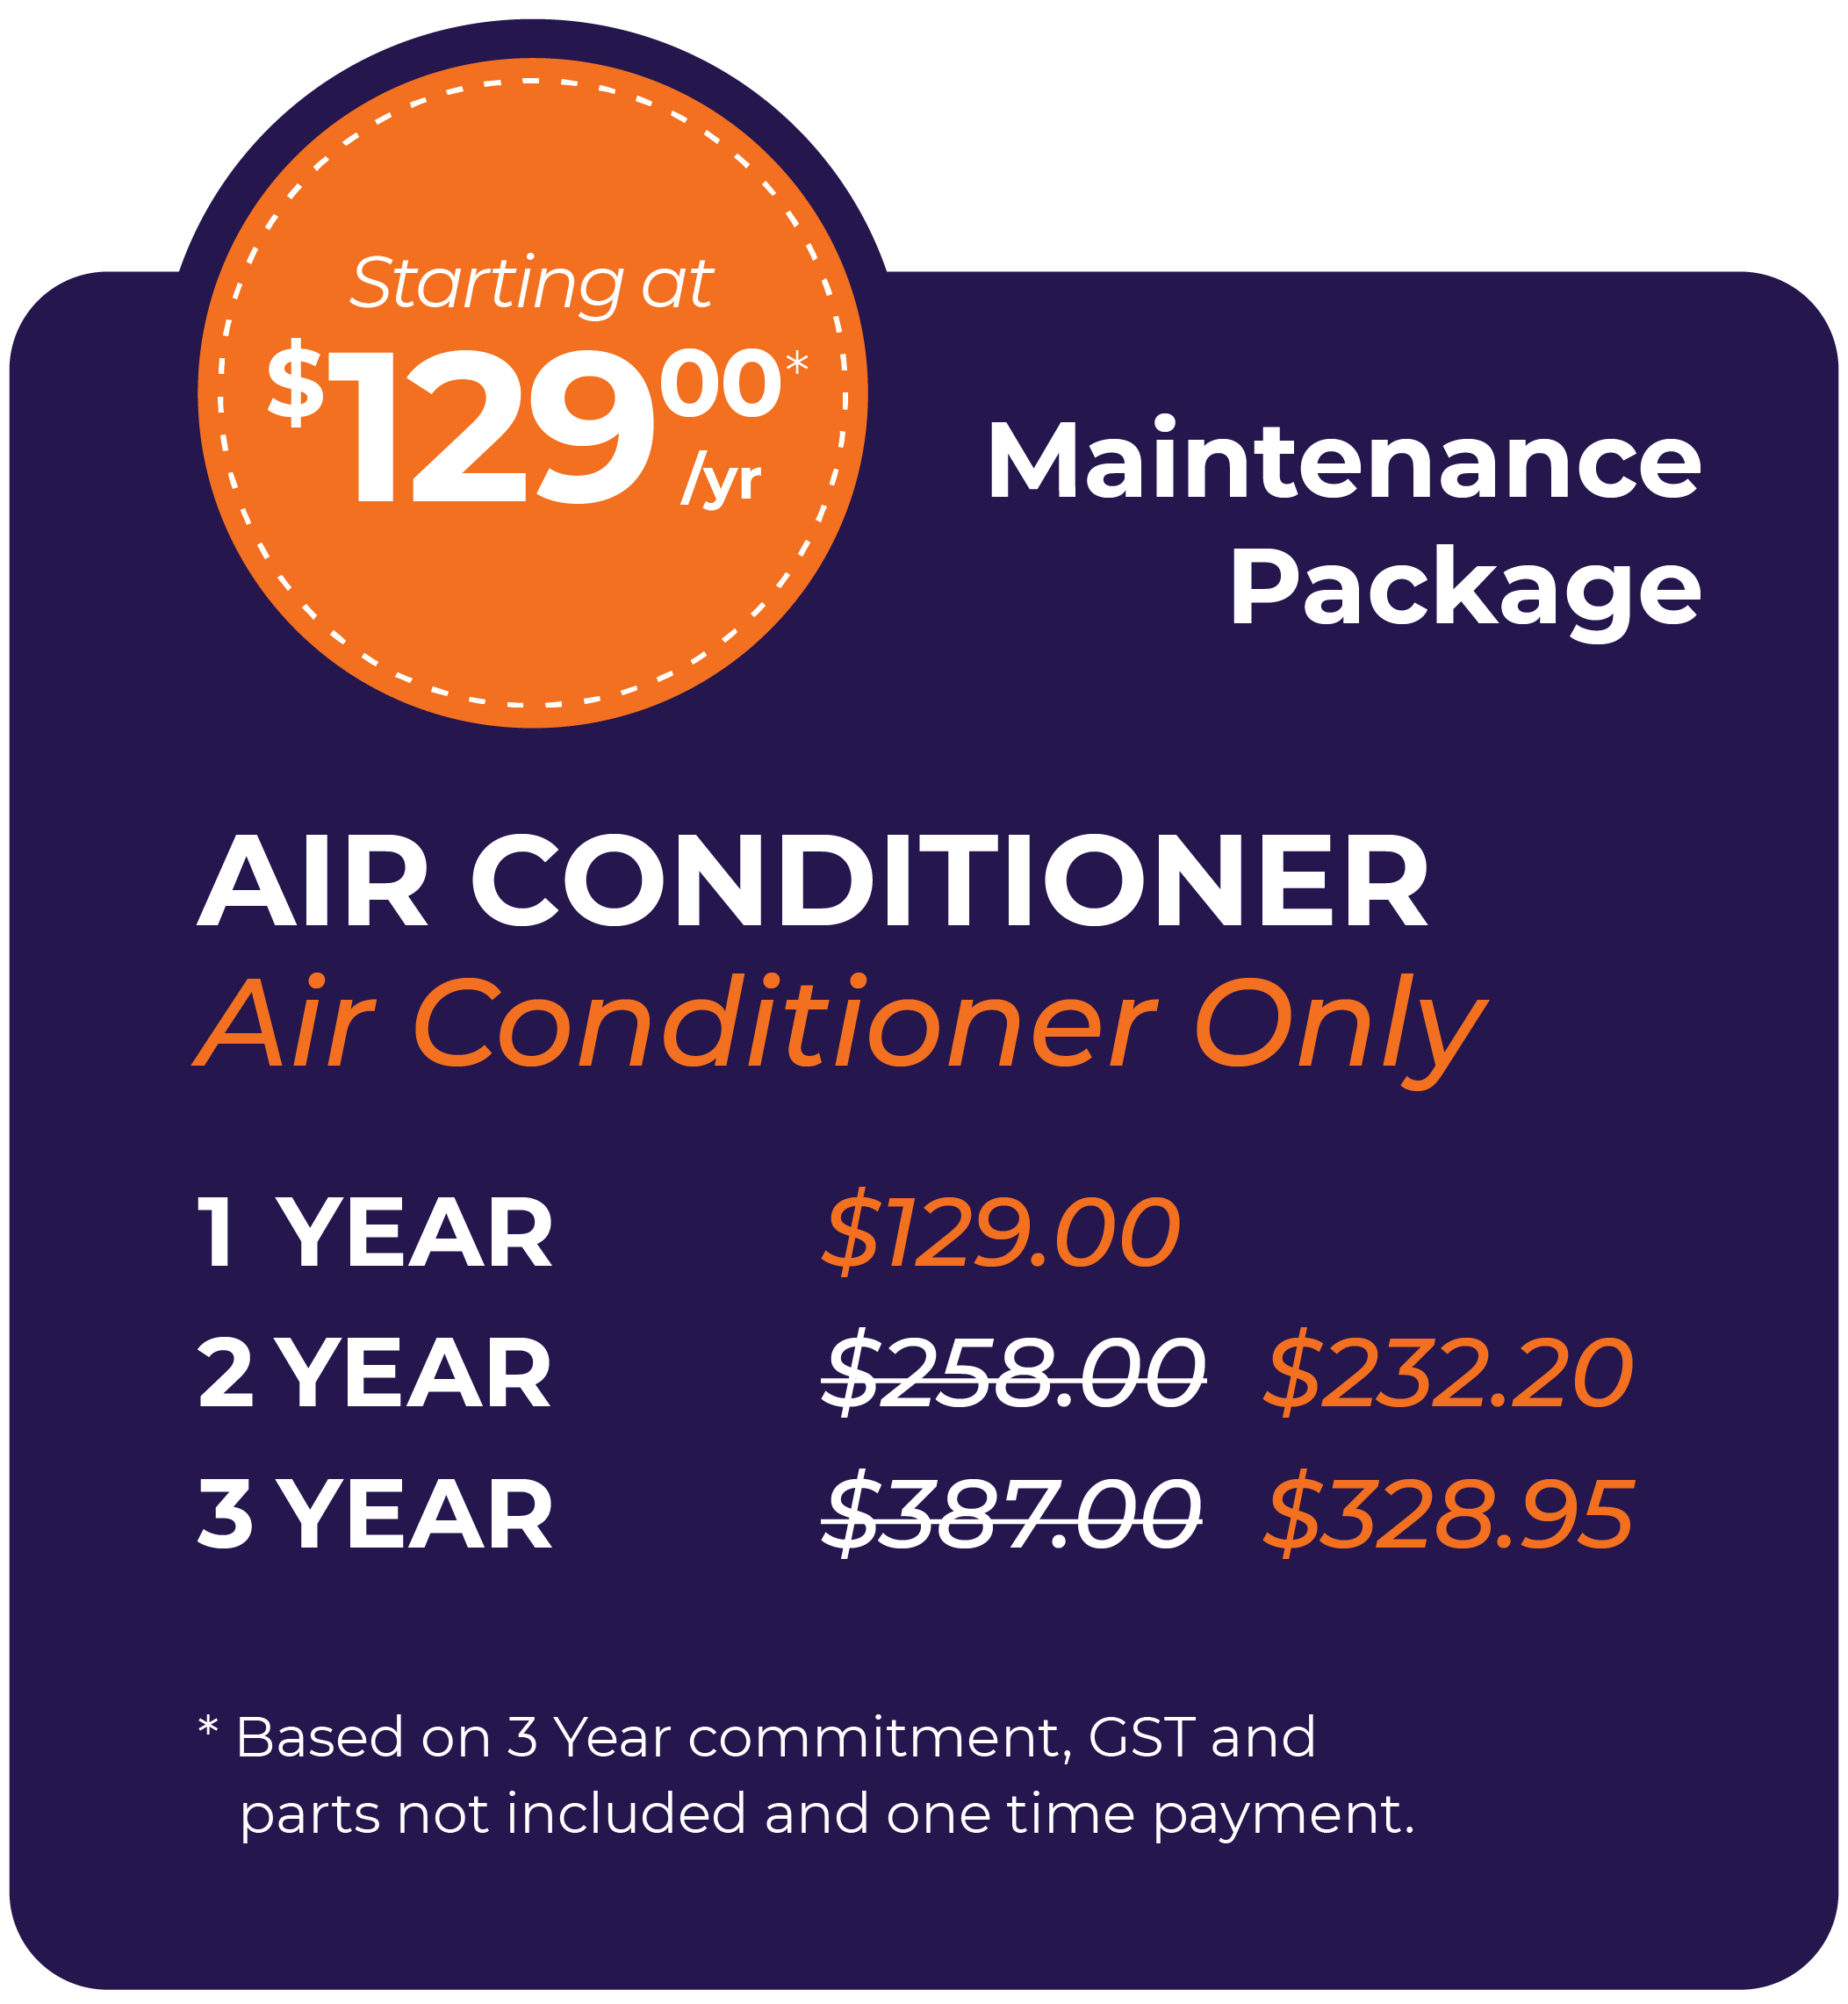 Air Conditioners Only Maintenance Package